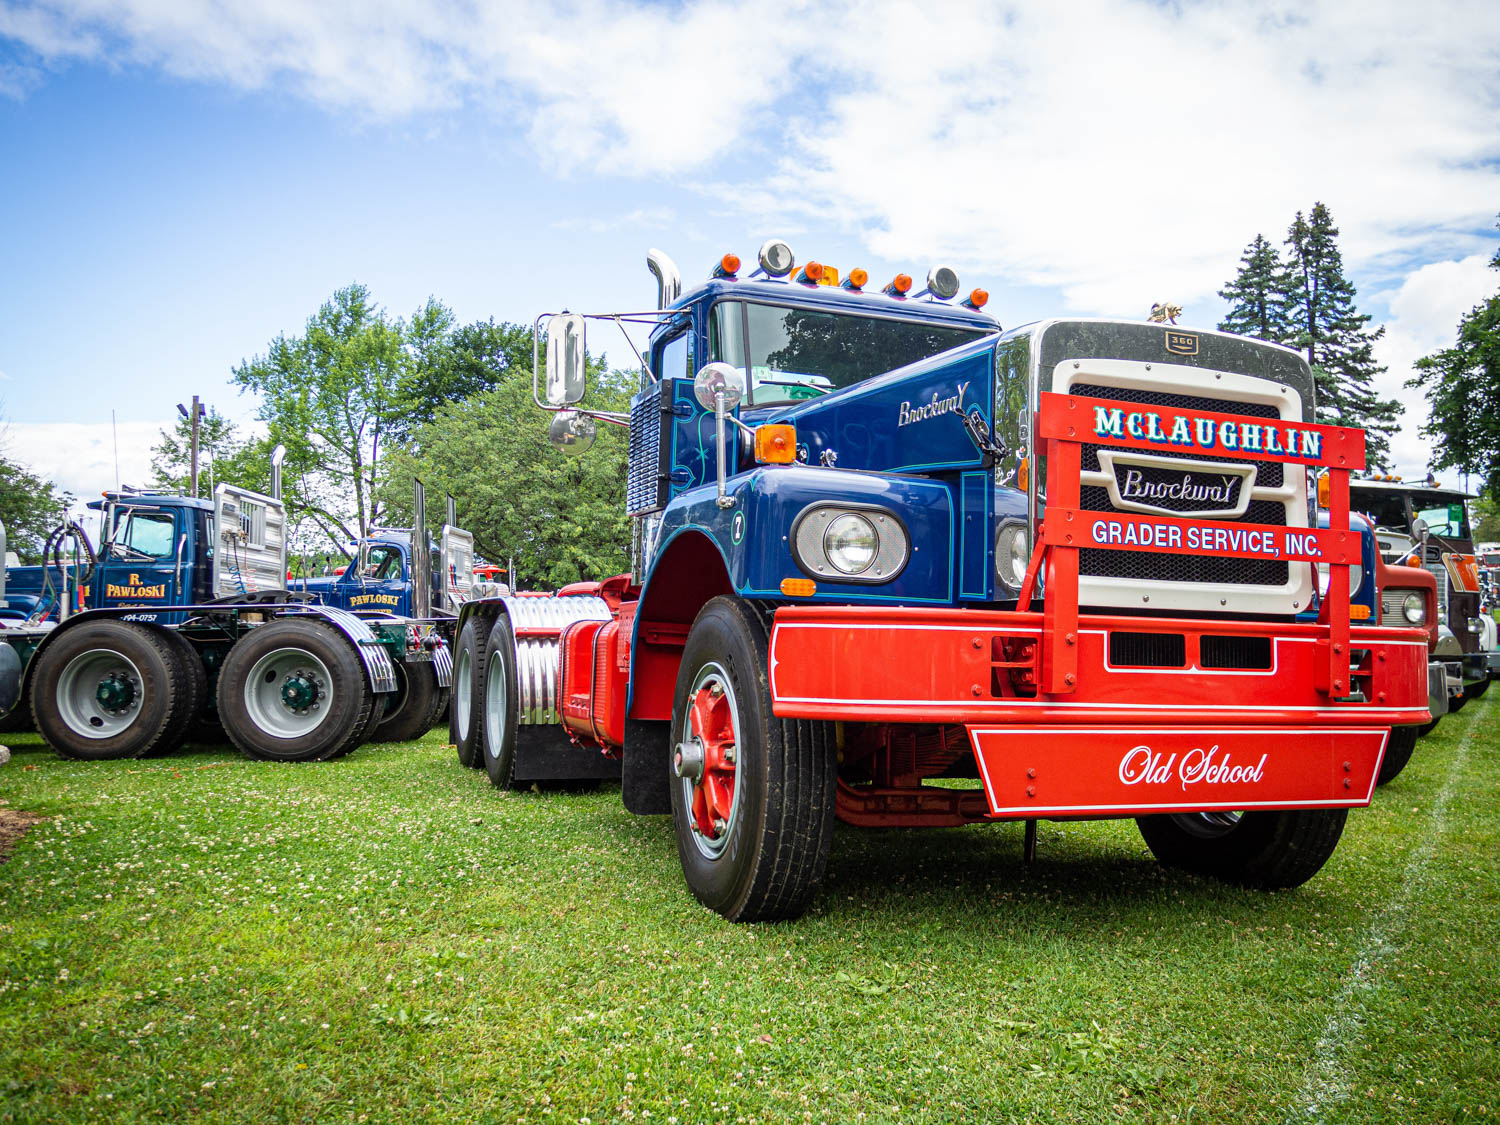 Brockway trucks were built in Cortland, New York, from 1912–77, and you don't really see them on the road anymore. This 1973 H360 TL was beautifully restored.